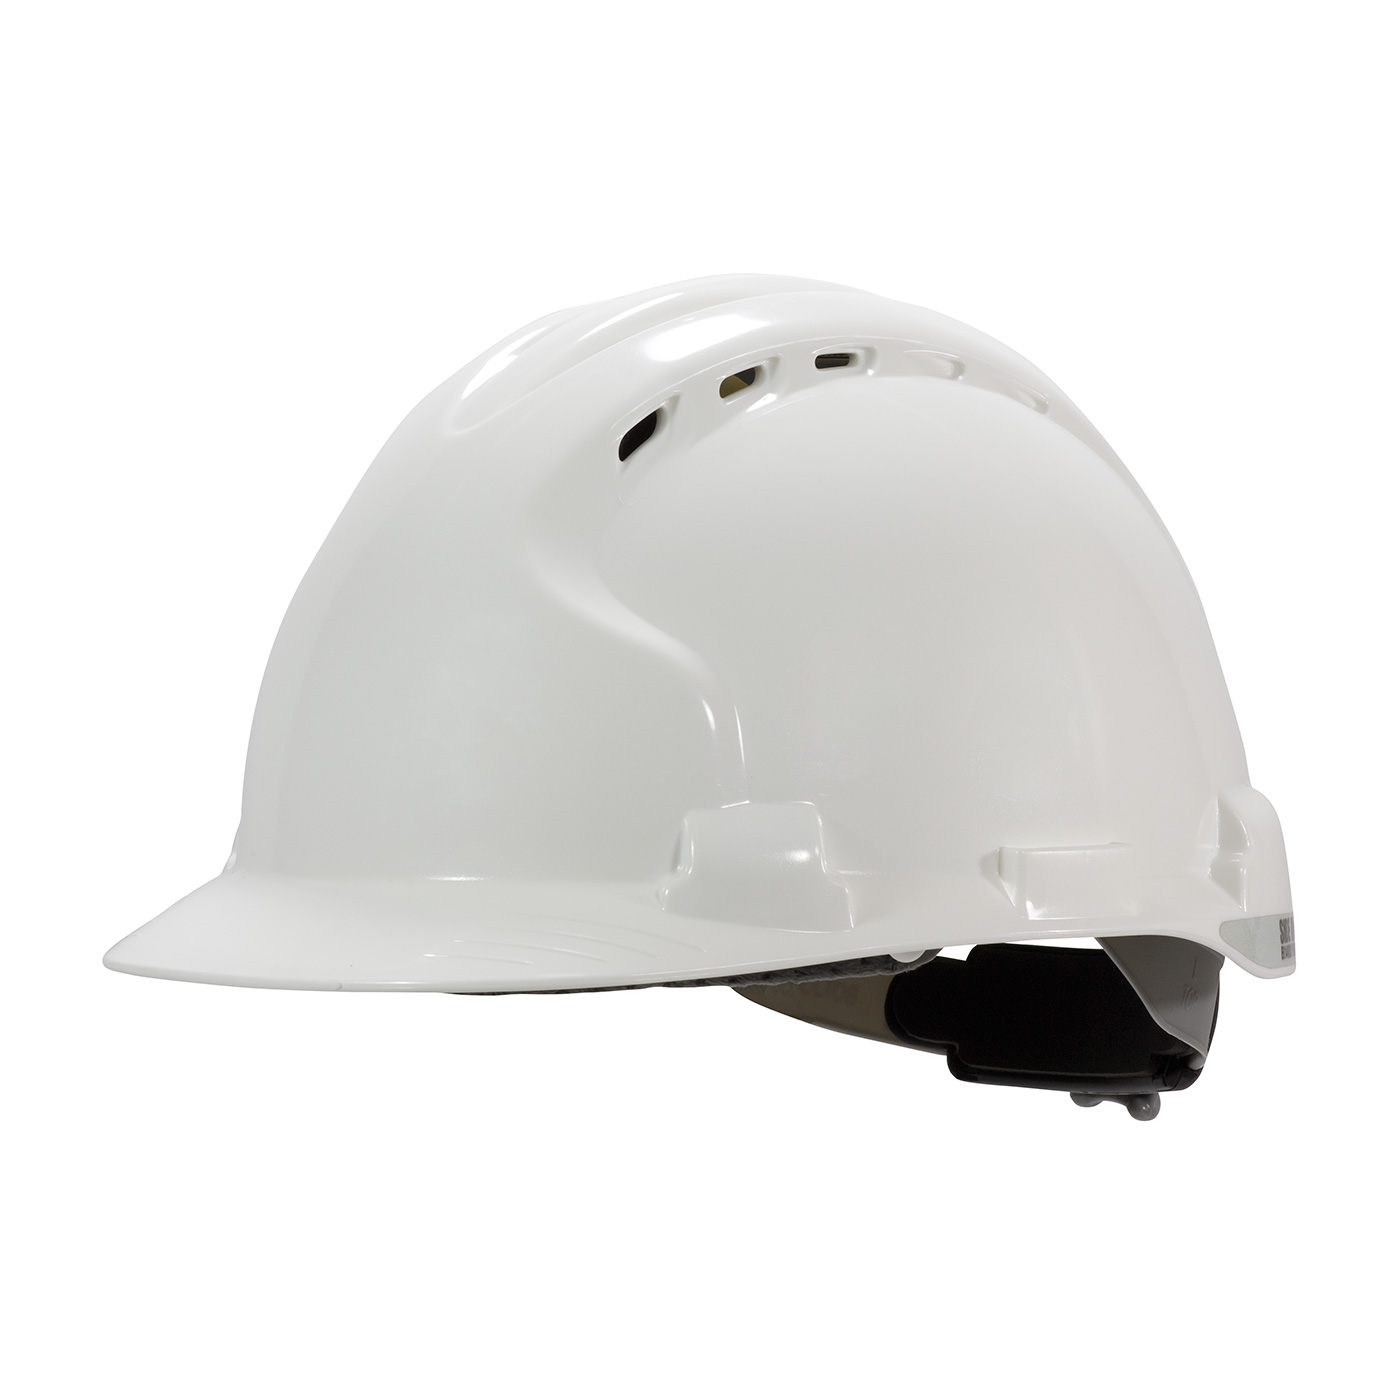 Vented, Type II Hard Hat with HDPE Shell, EPS Impact Liner, Polyester Suspension and Wheel Ratchet Adjustment, White, OS